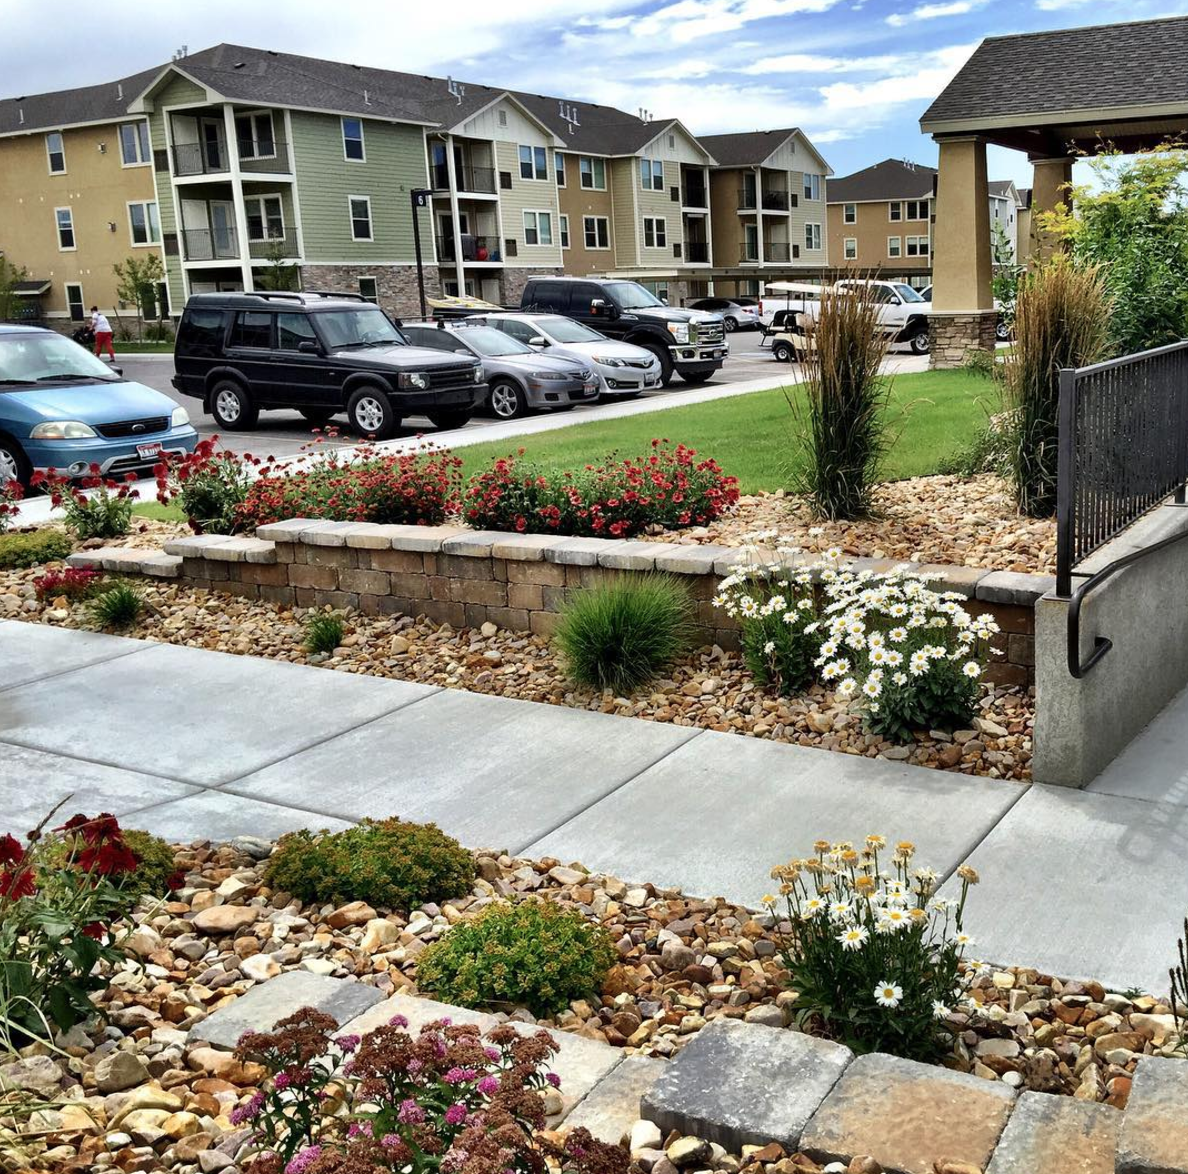 Landscaping Ideas For Commercial Buildings: Landscaping Ideas For Apartment Buildings (To Increase Occupancy And Retention In 2017